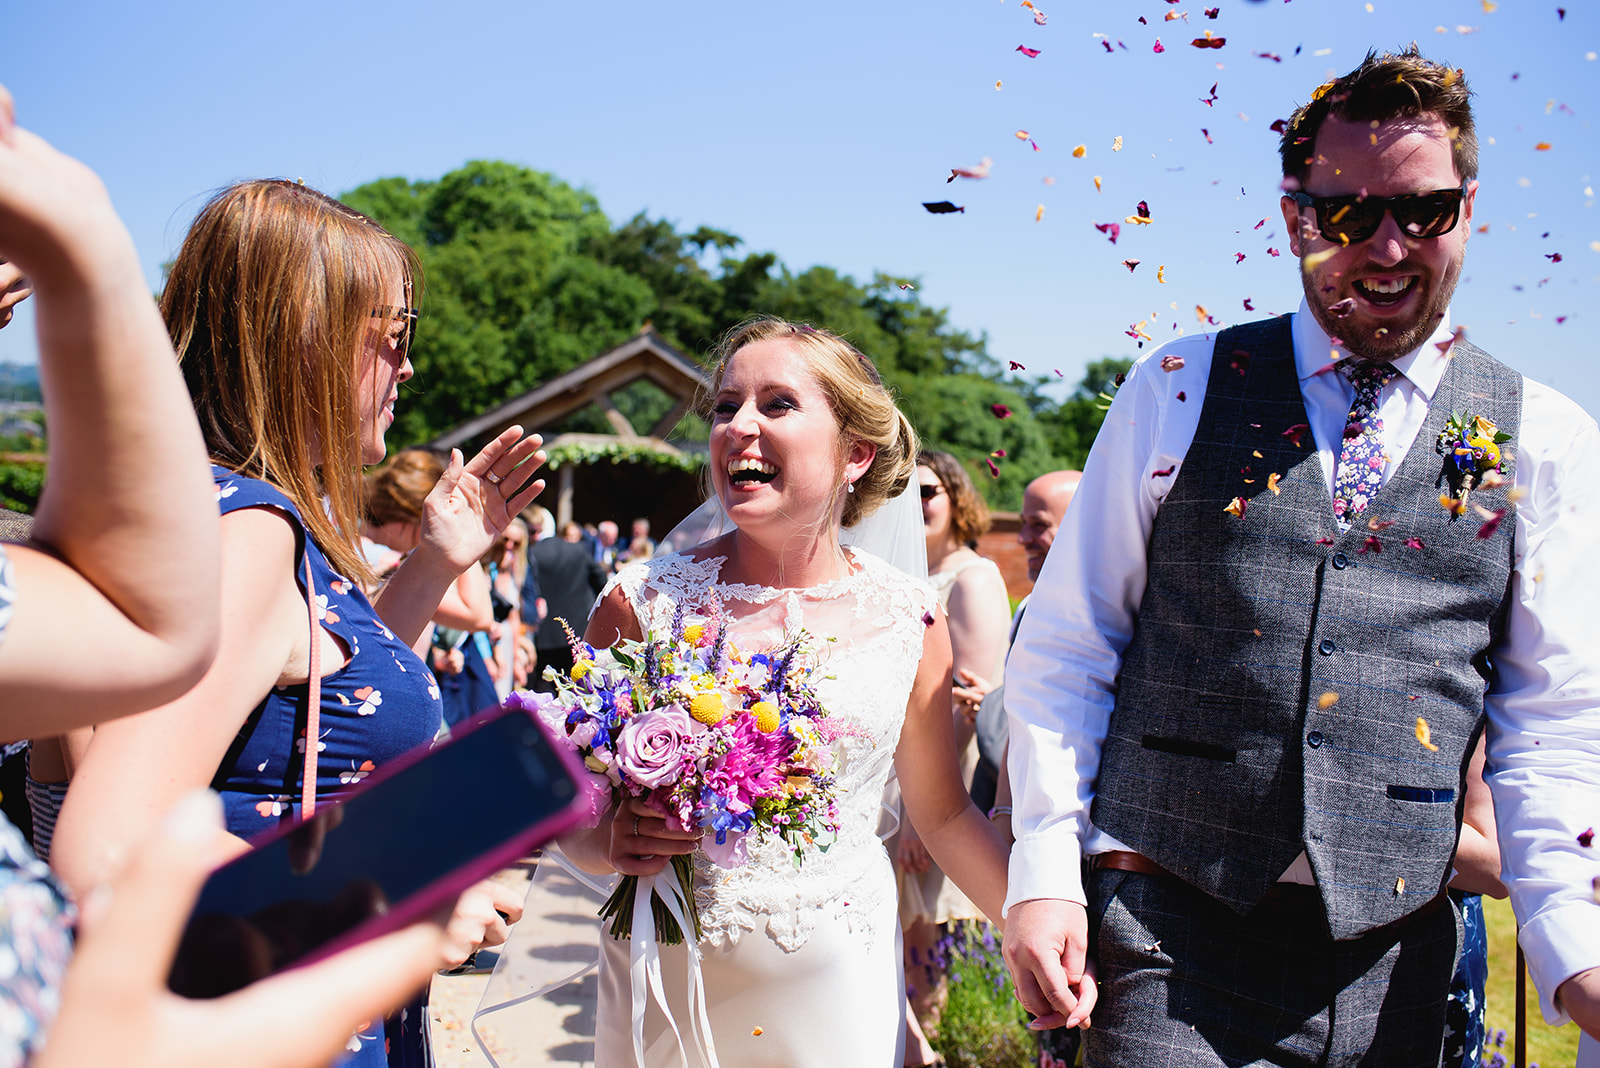 Confetti covers the bride and groom at Upton Barn & Walled Garden